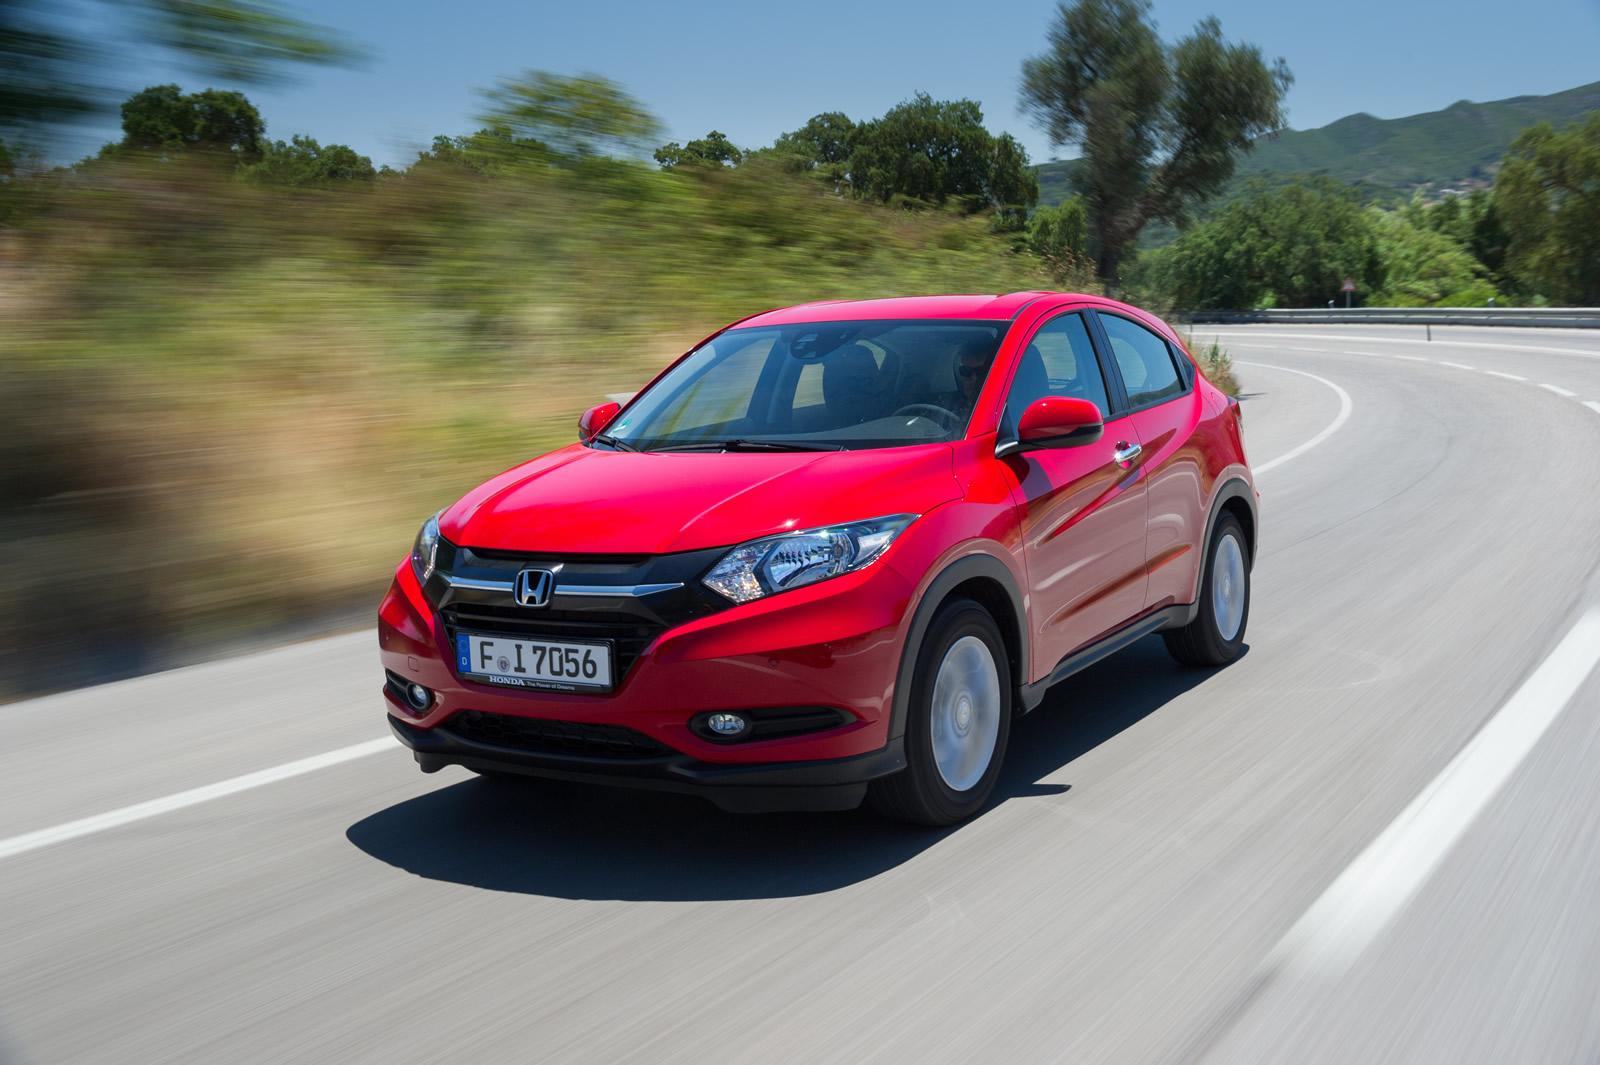 Honda HR-V will cost starting from 17,995 pounds in the UK